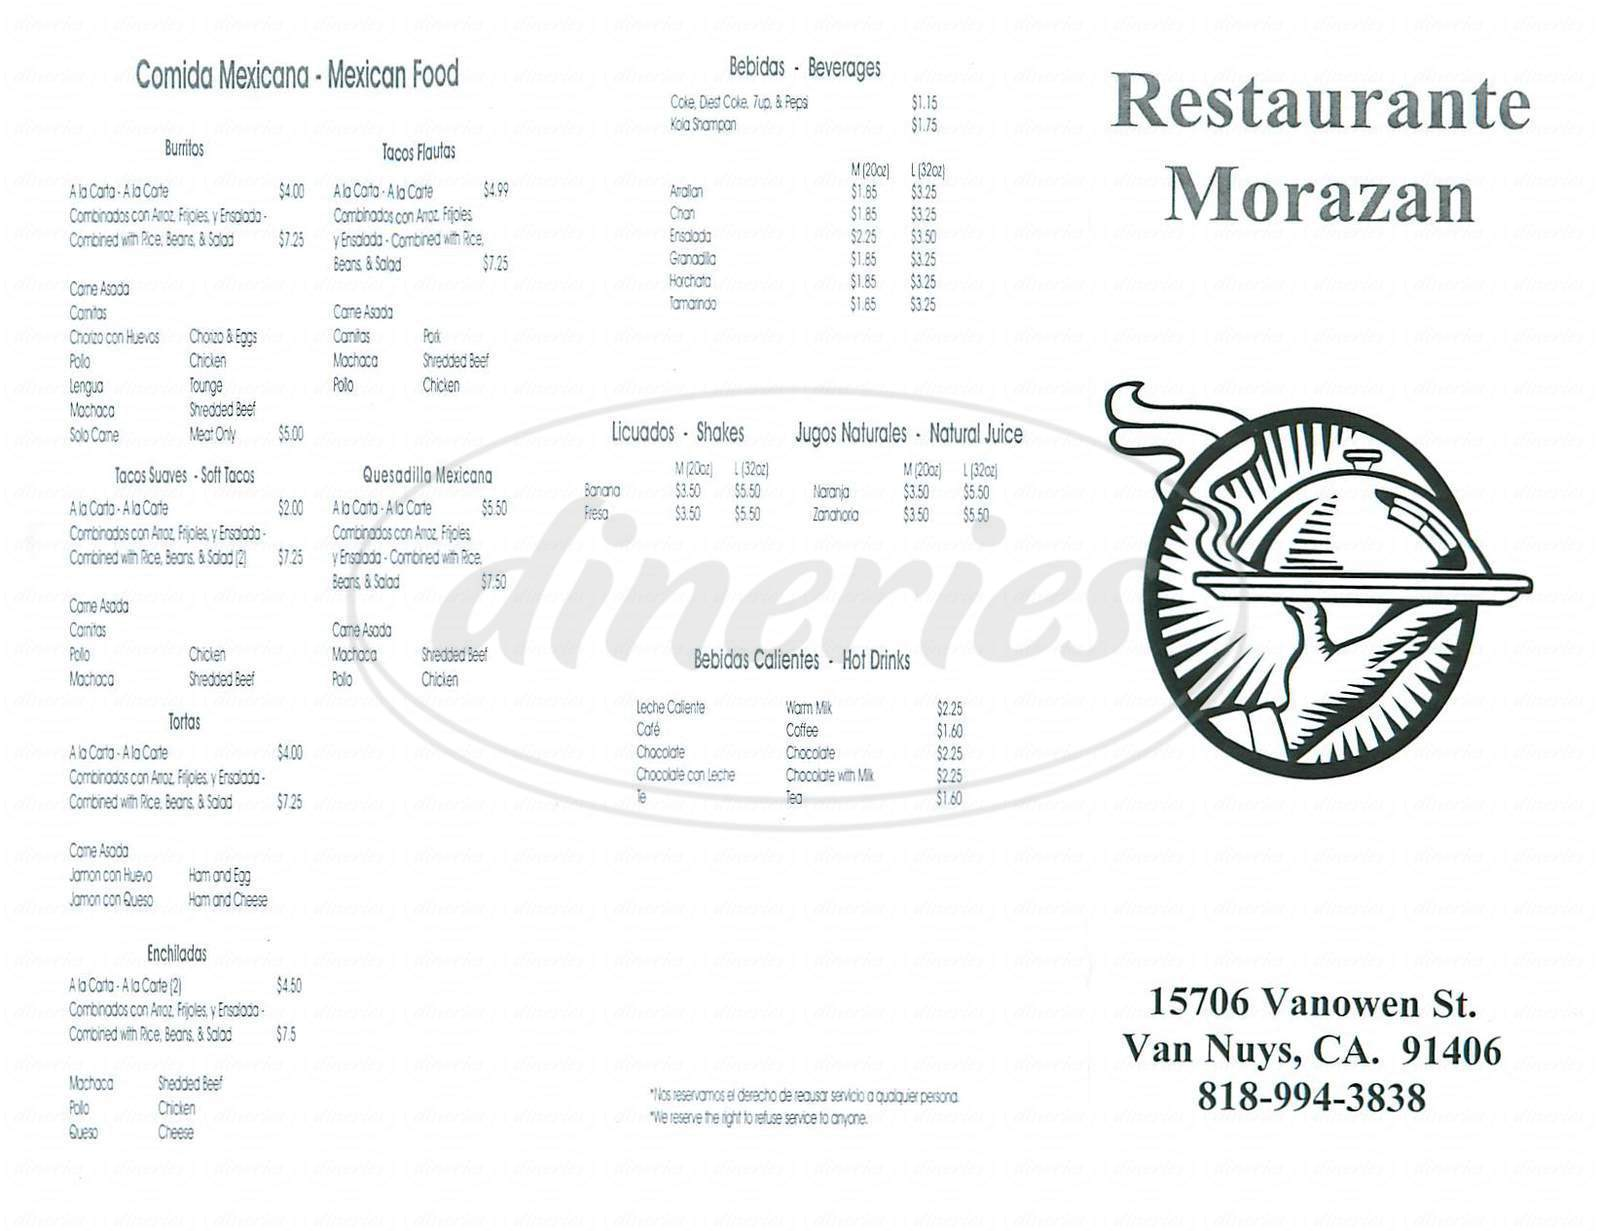 menu for Restaurante Morazan